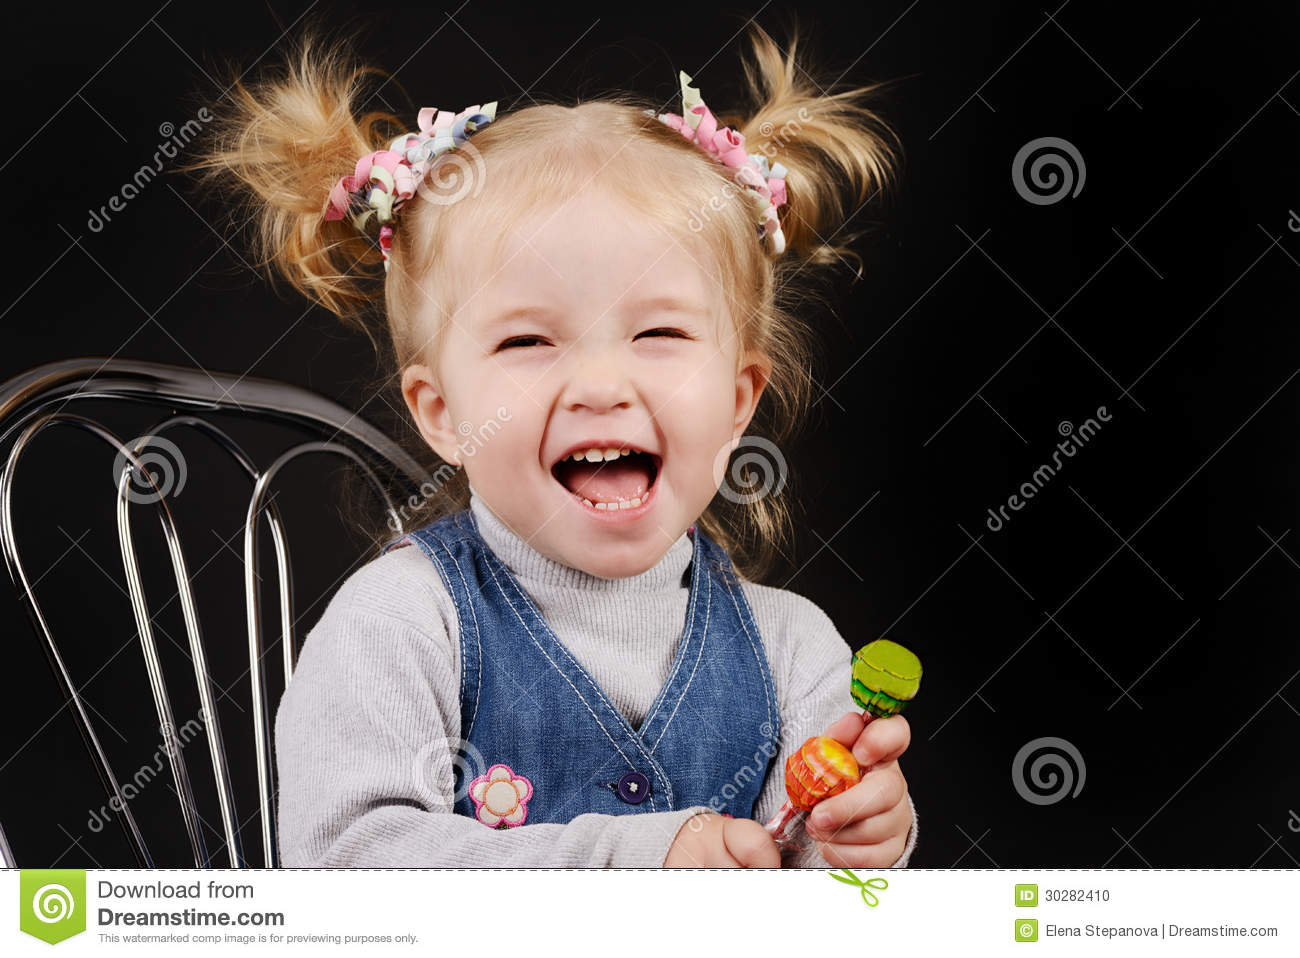 Toddler Girl With Ponytail Hairstyle Stock Photo Image